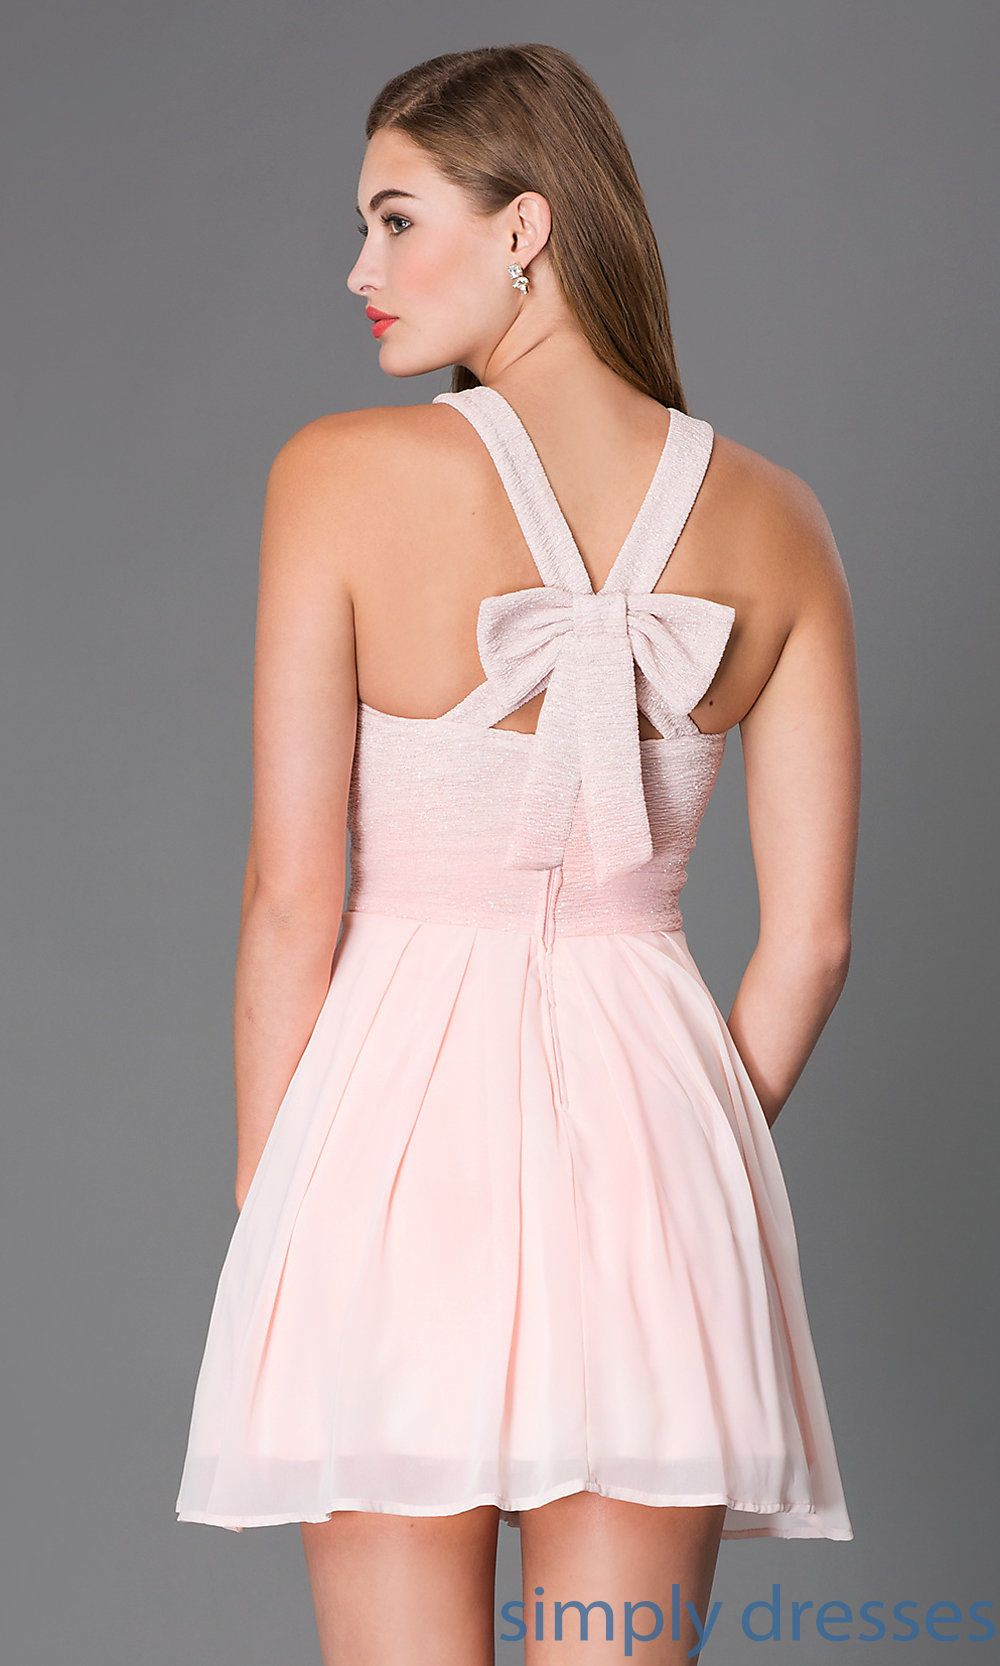 90485efd539 Shop sleeveless blush pink short glitter print cocktail dresses at  SimplyDresses. Semi formal prom dresses with high necks and back bows.